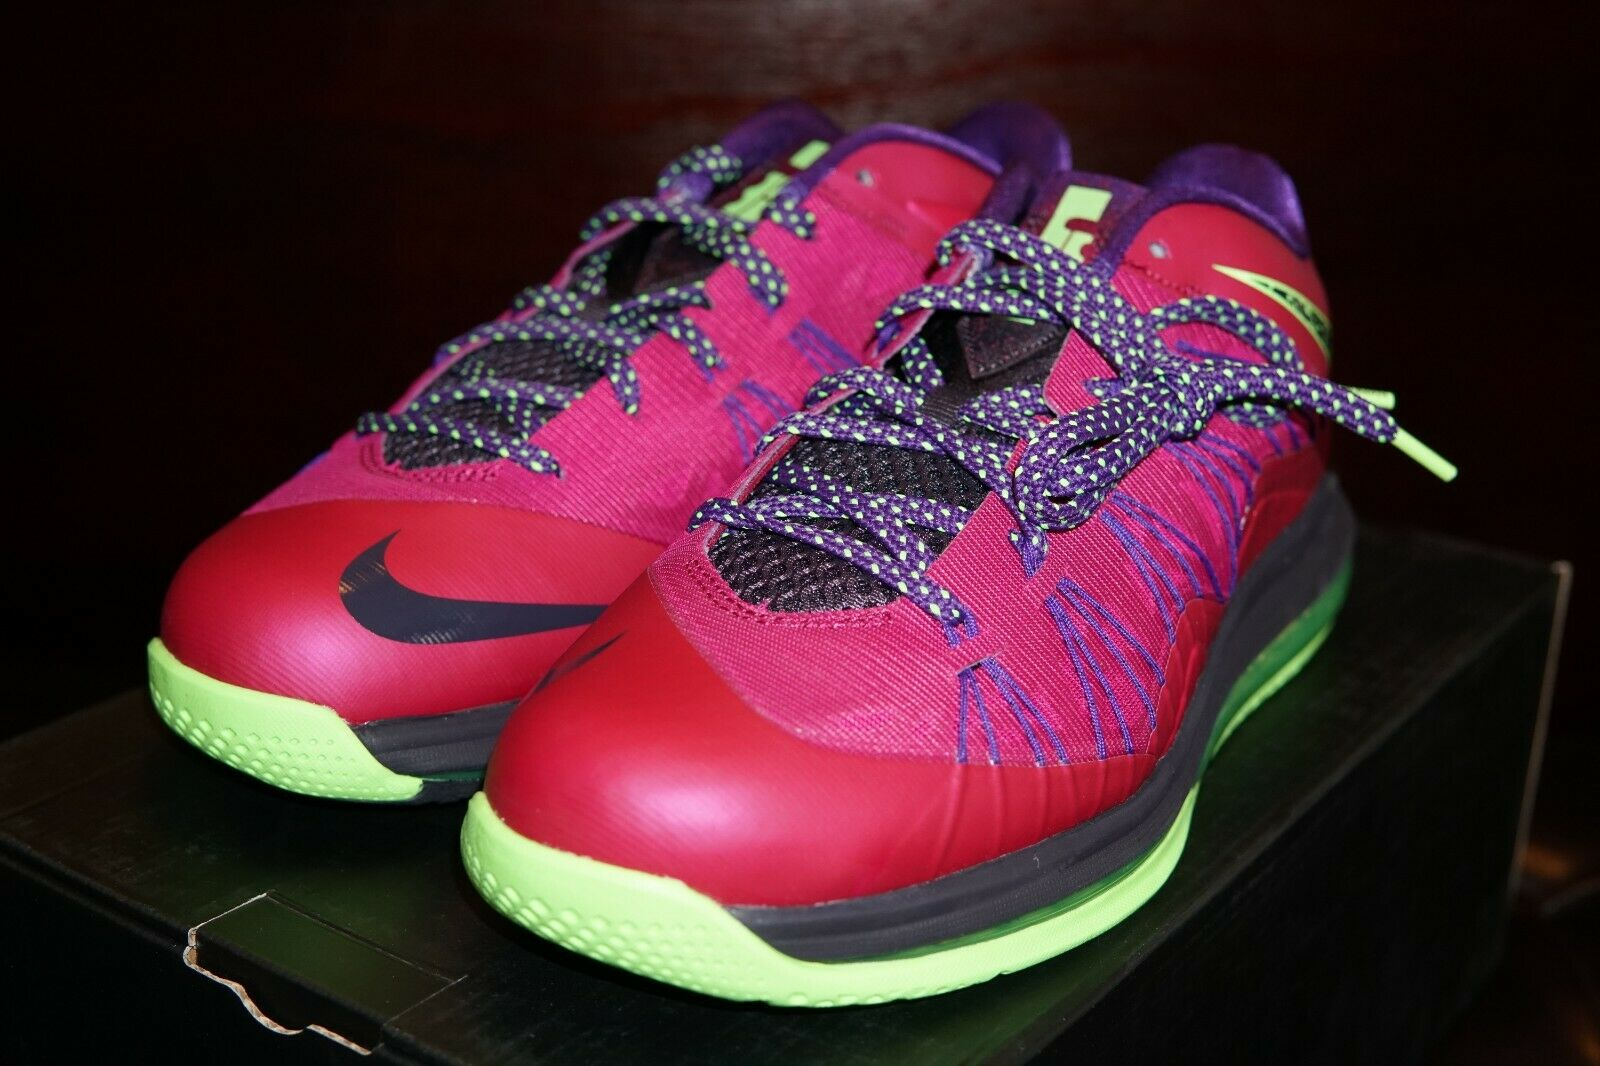 Nike Air Max Lebron X Low Size 10.5 Rasberry Red Green Mamba New in box